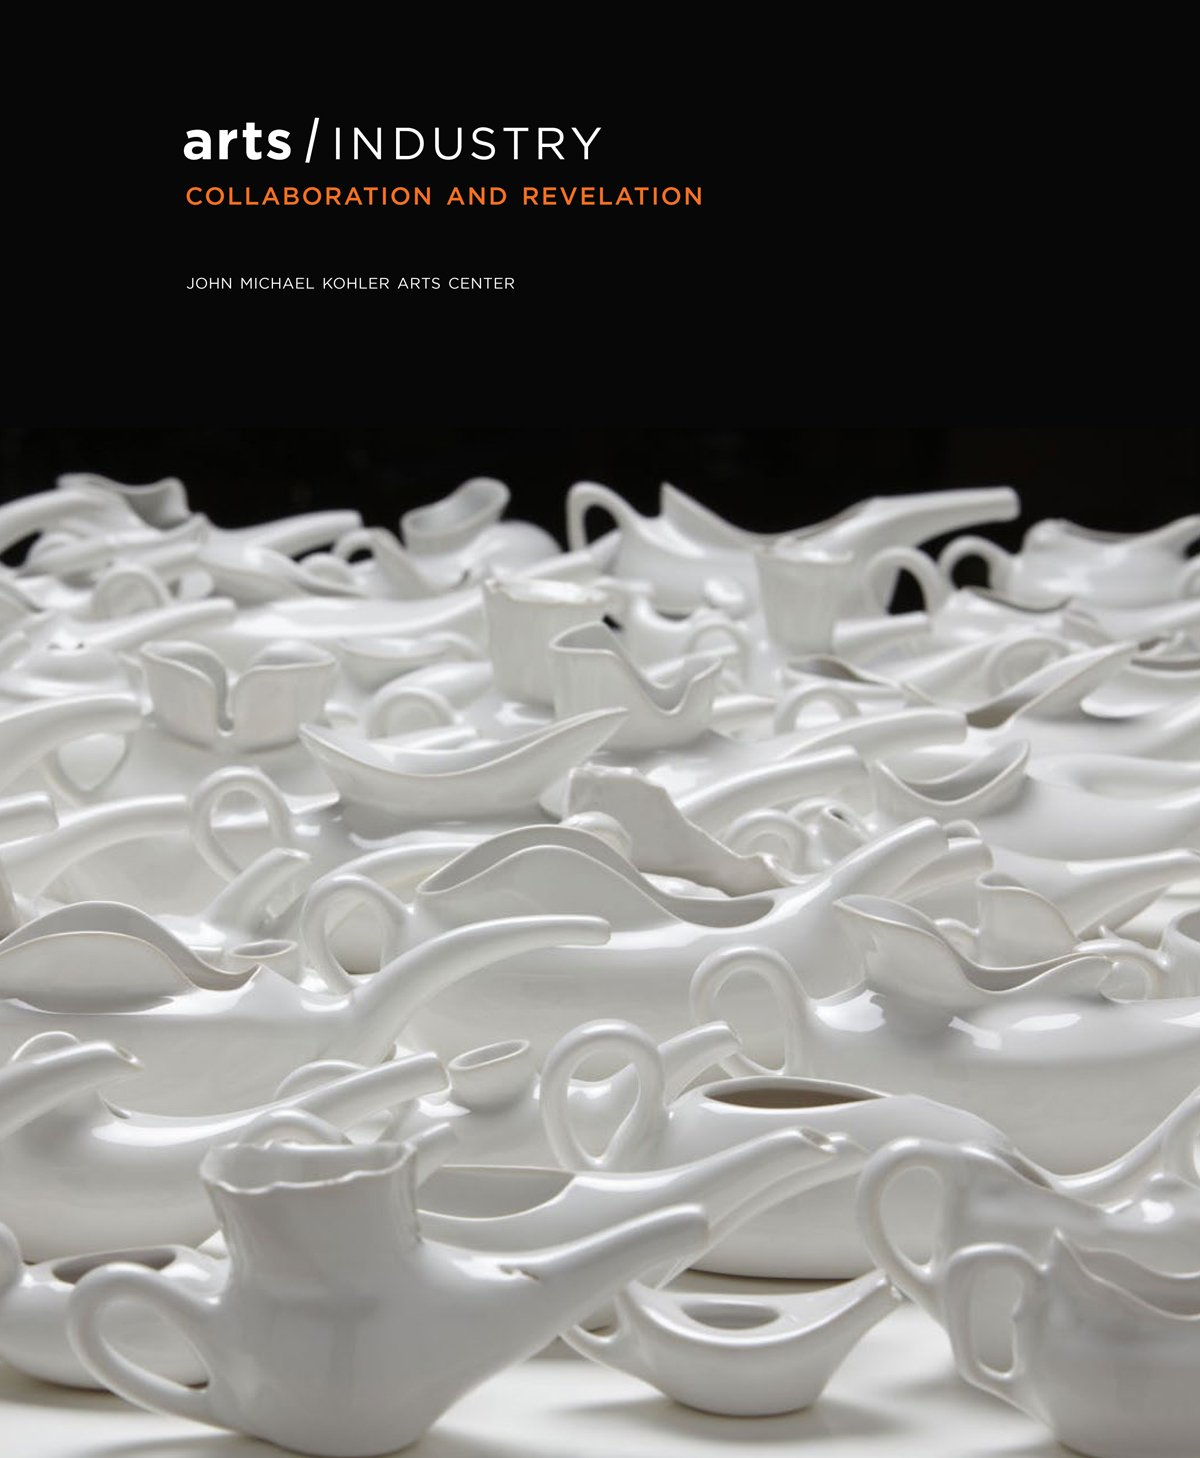 Arts/Industry: Collaboration and Revelation